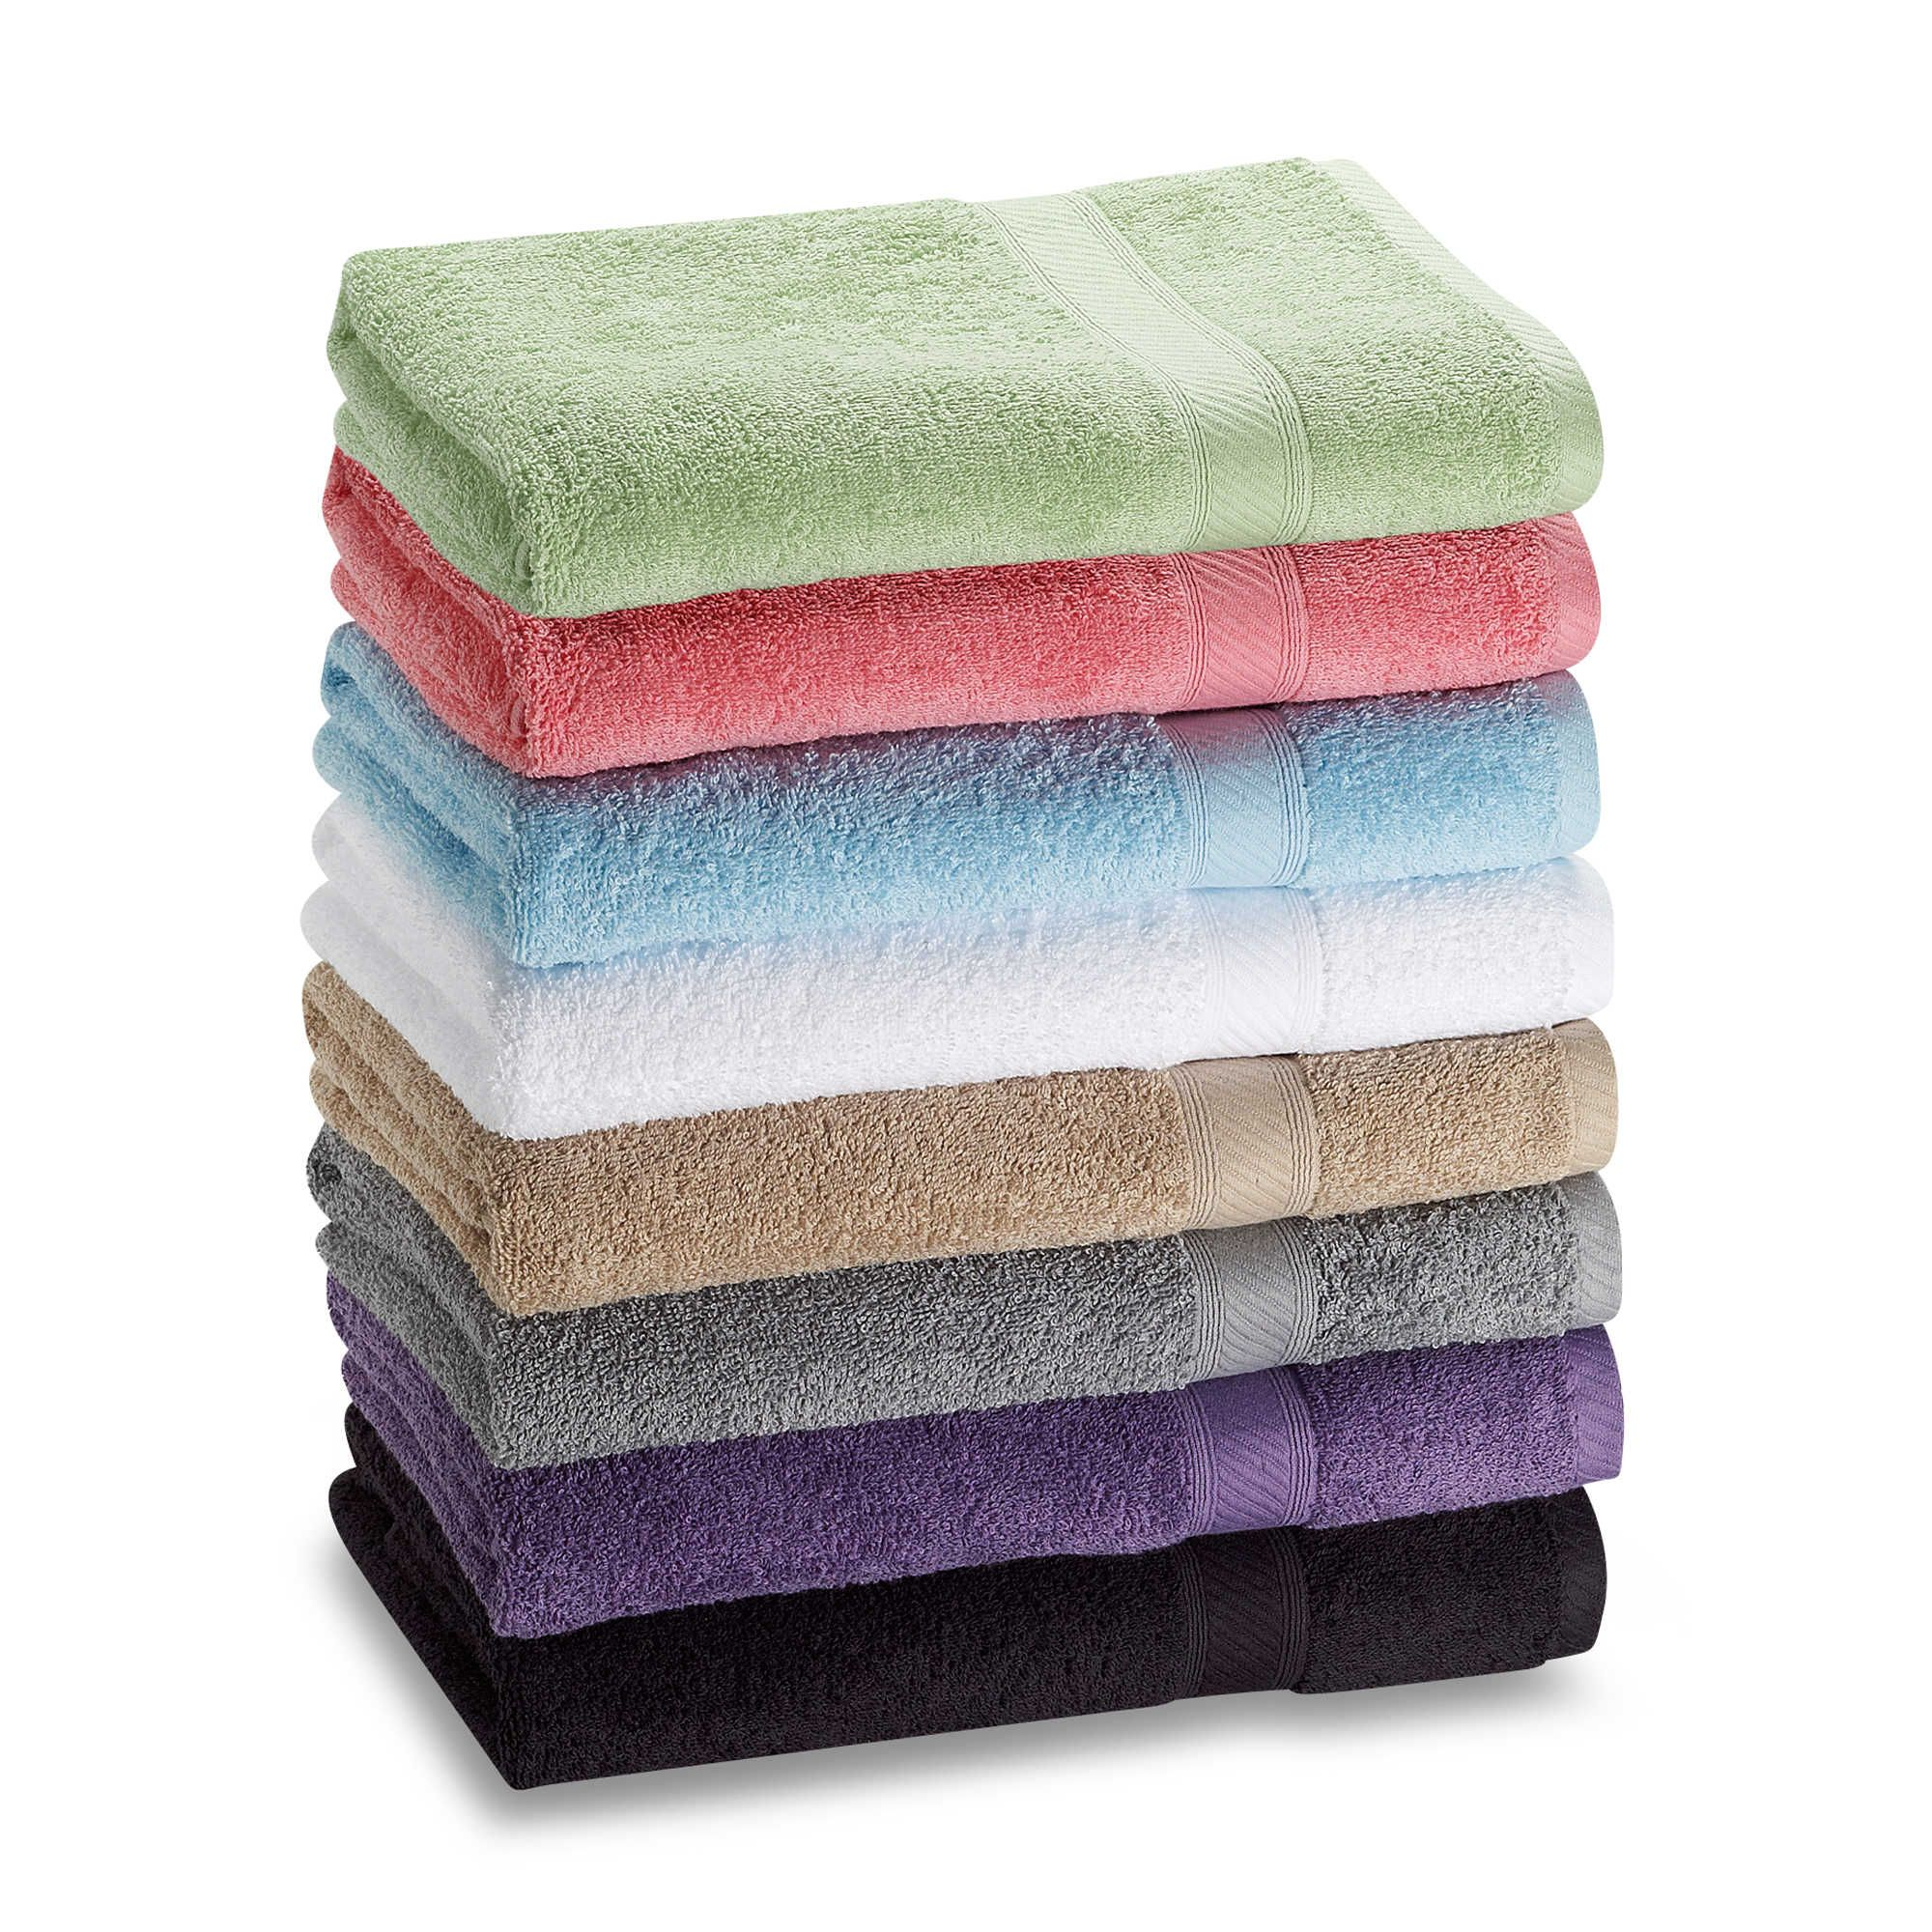 How To Choose The Best Bath Towel Colorful Bath Best Bath